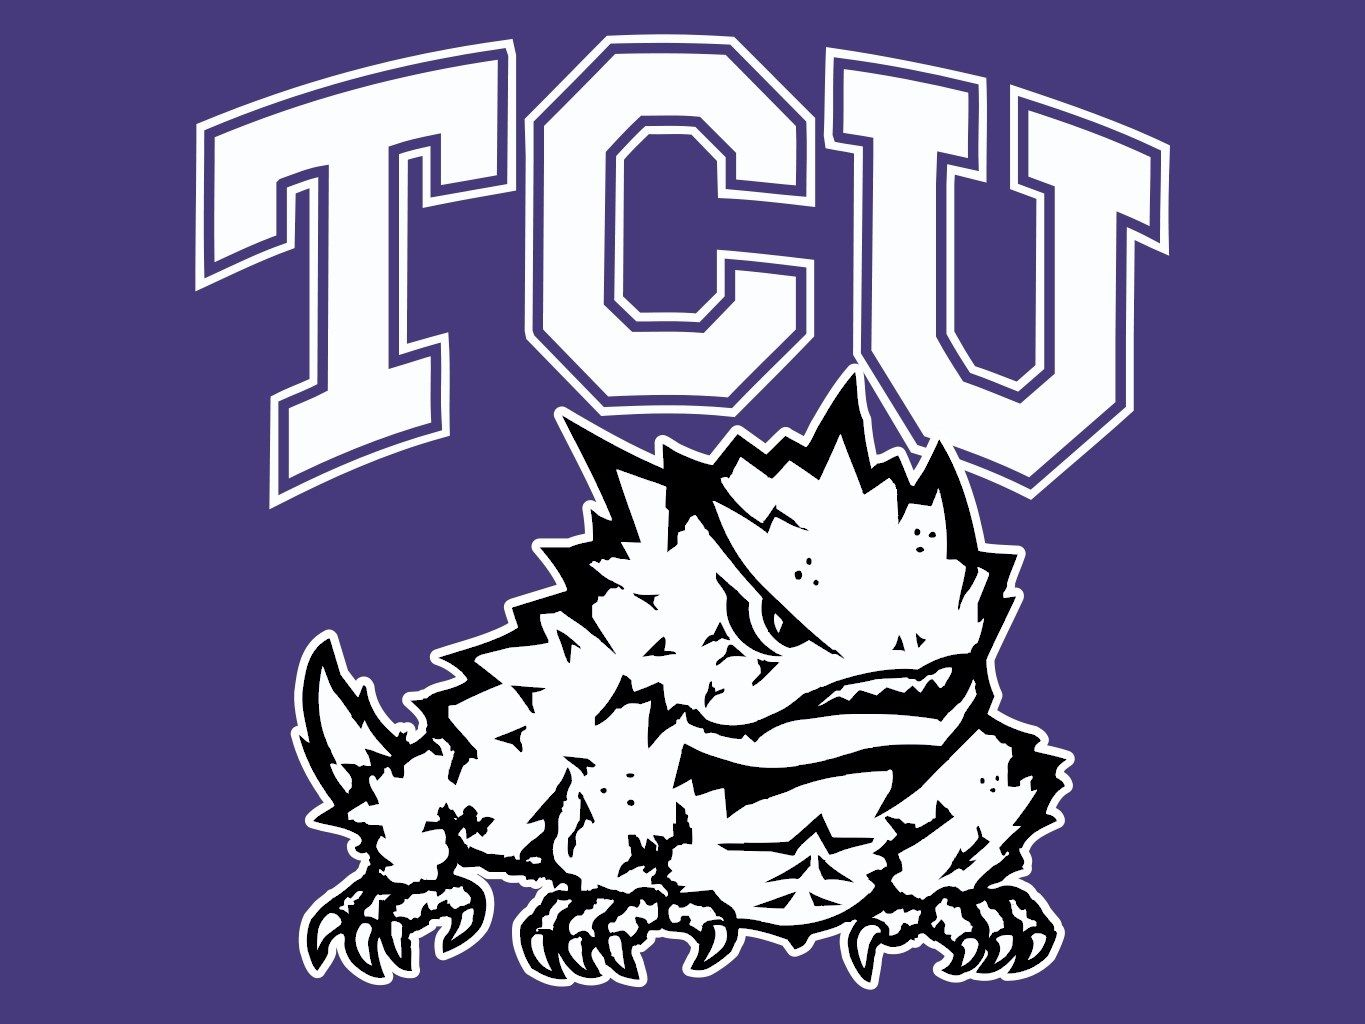 Tcu Logo Hd Tcu Horned Frogs Tcu Horned Frogs Football Horned Frogs